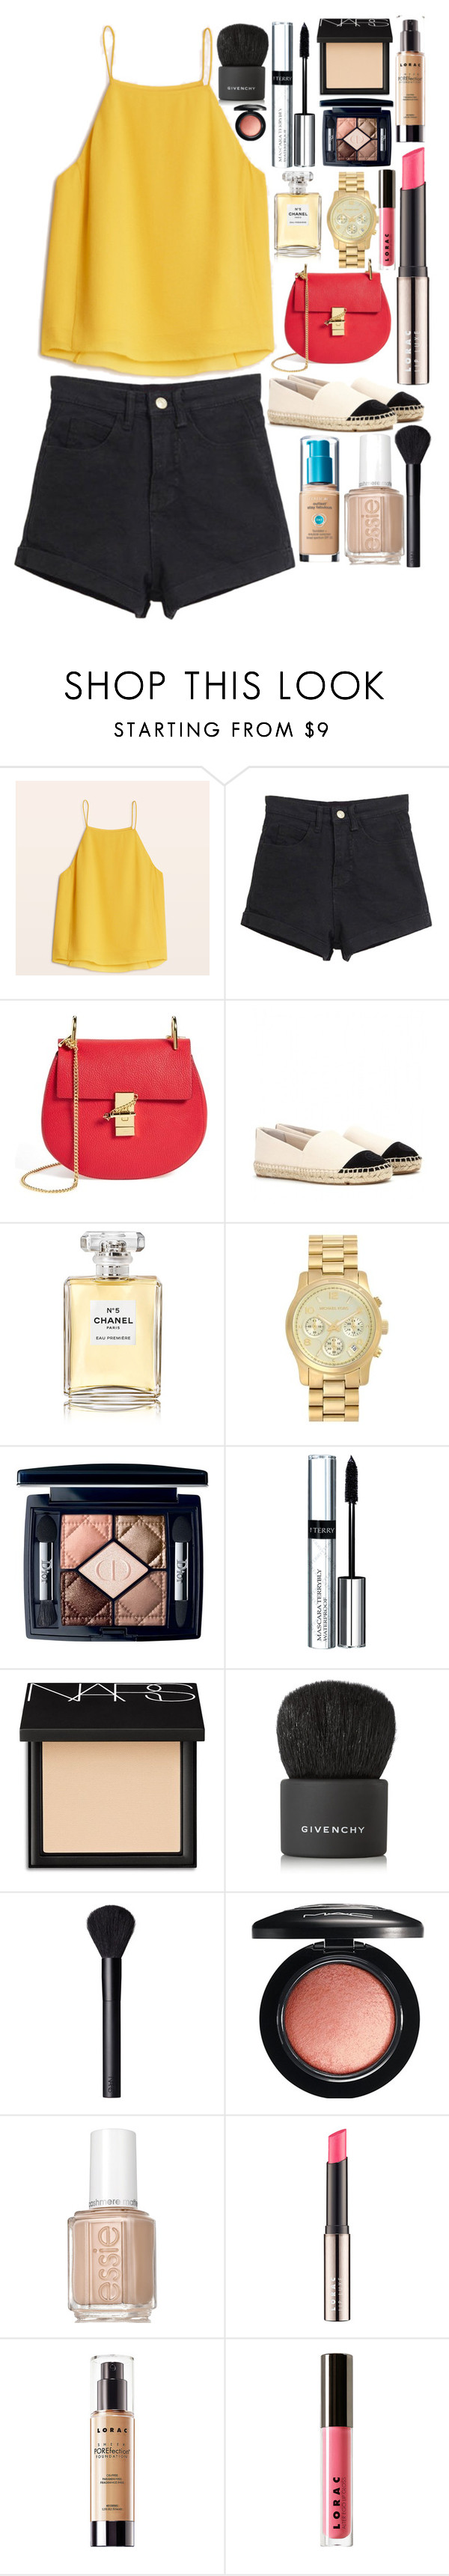 """Untitled #213"" by nthomen on Polyvore featuring Chloé, Tory Burch, Chanel, MICHAEL Michael Kors, Christian Dior, By Terry, NARS Cosmetics, Givenchy, MAC Cosmetics and Essie"